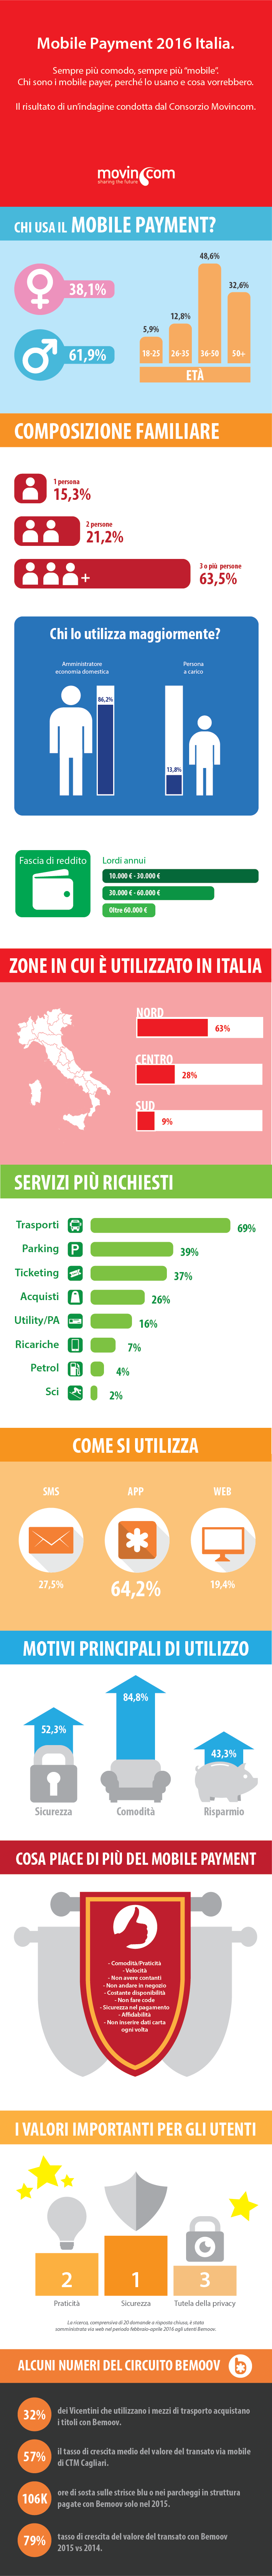 Mobile-payment - Italia 2016